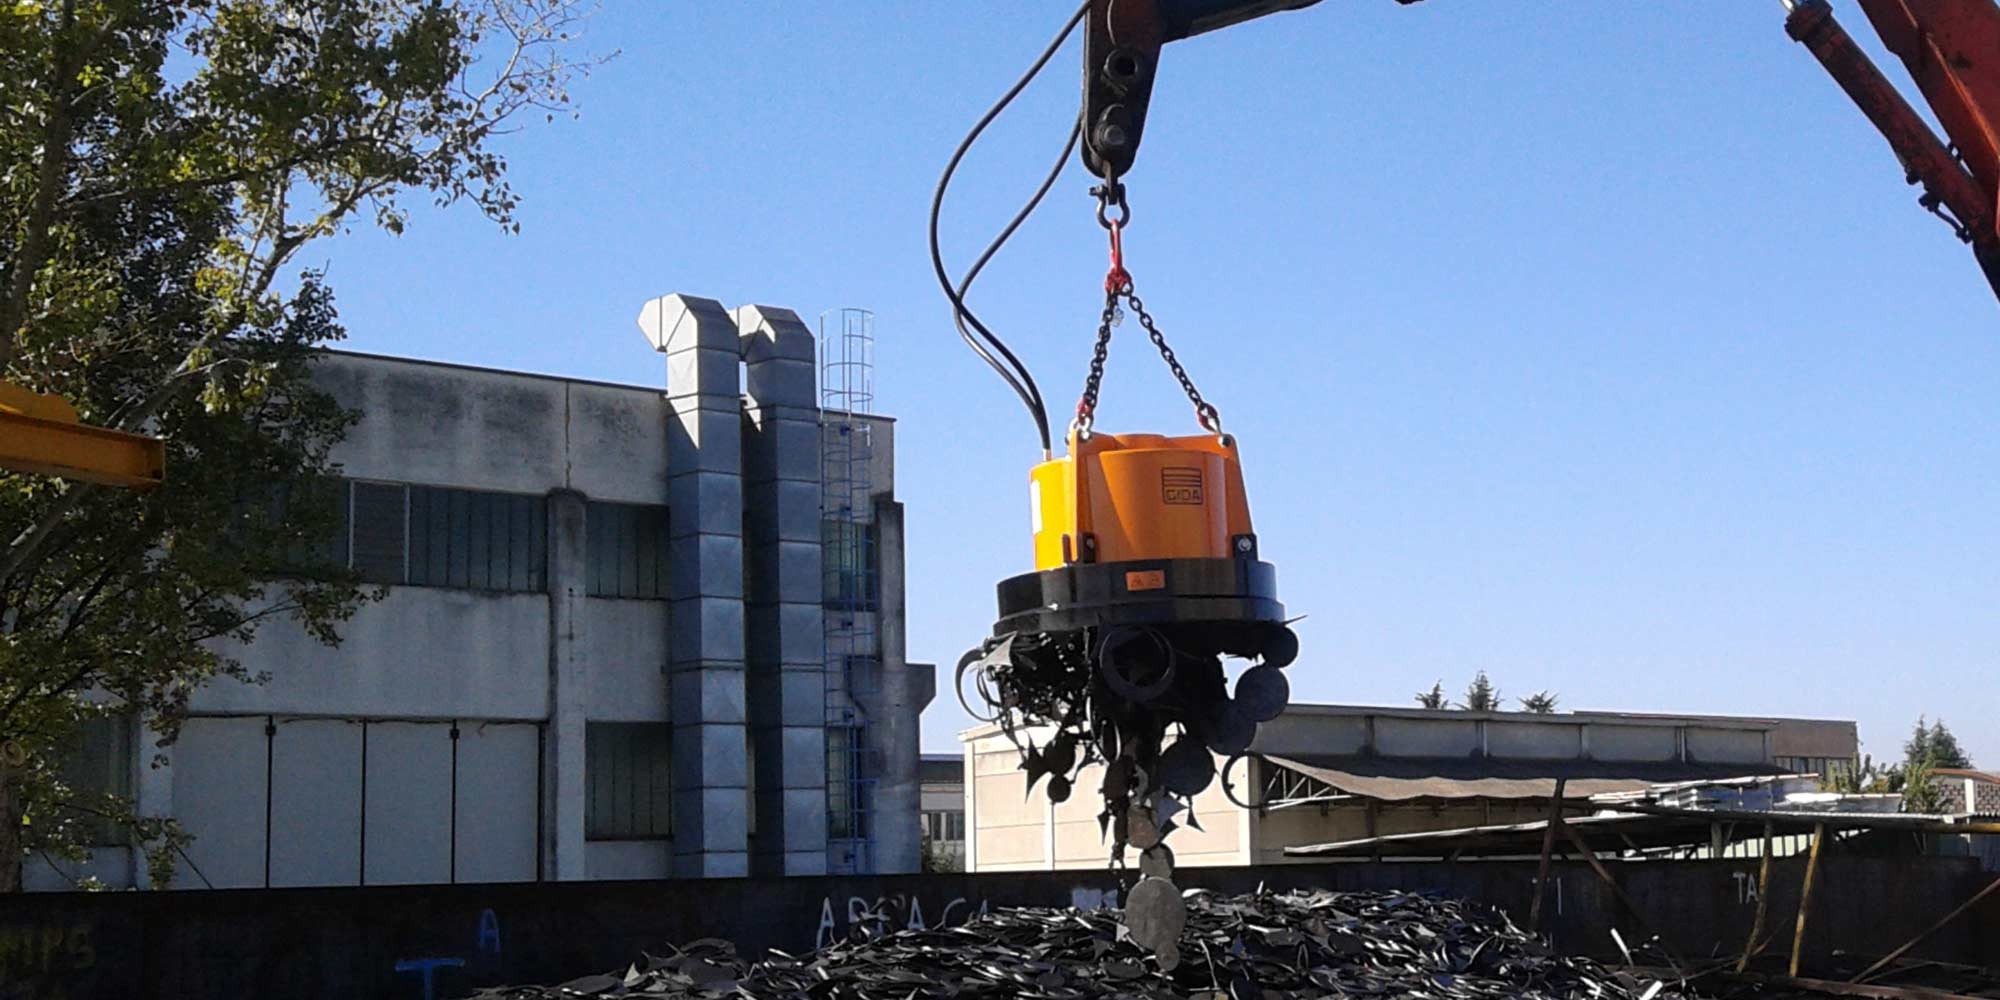 GI-DA Magnets - Demolition & Waste Recycling Magnets